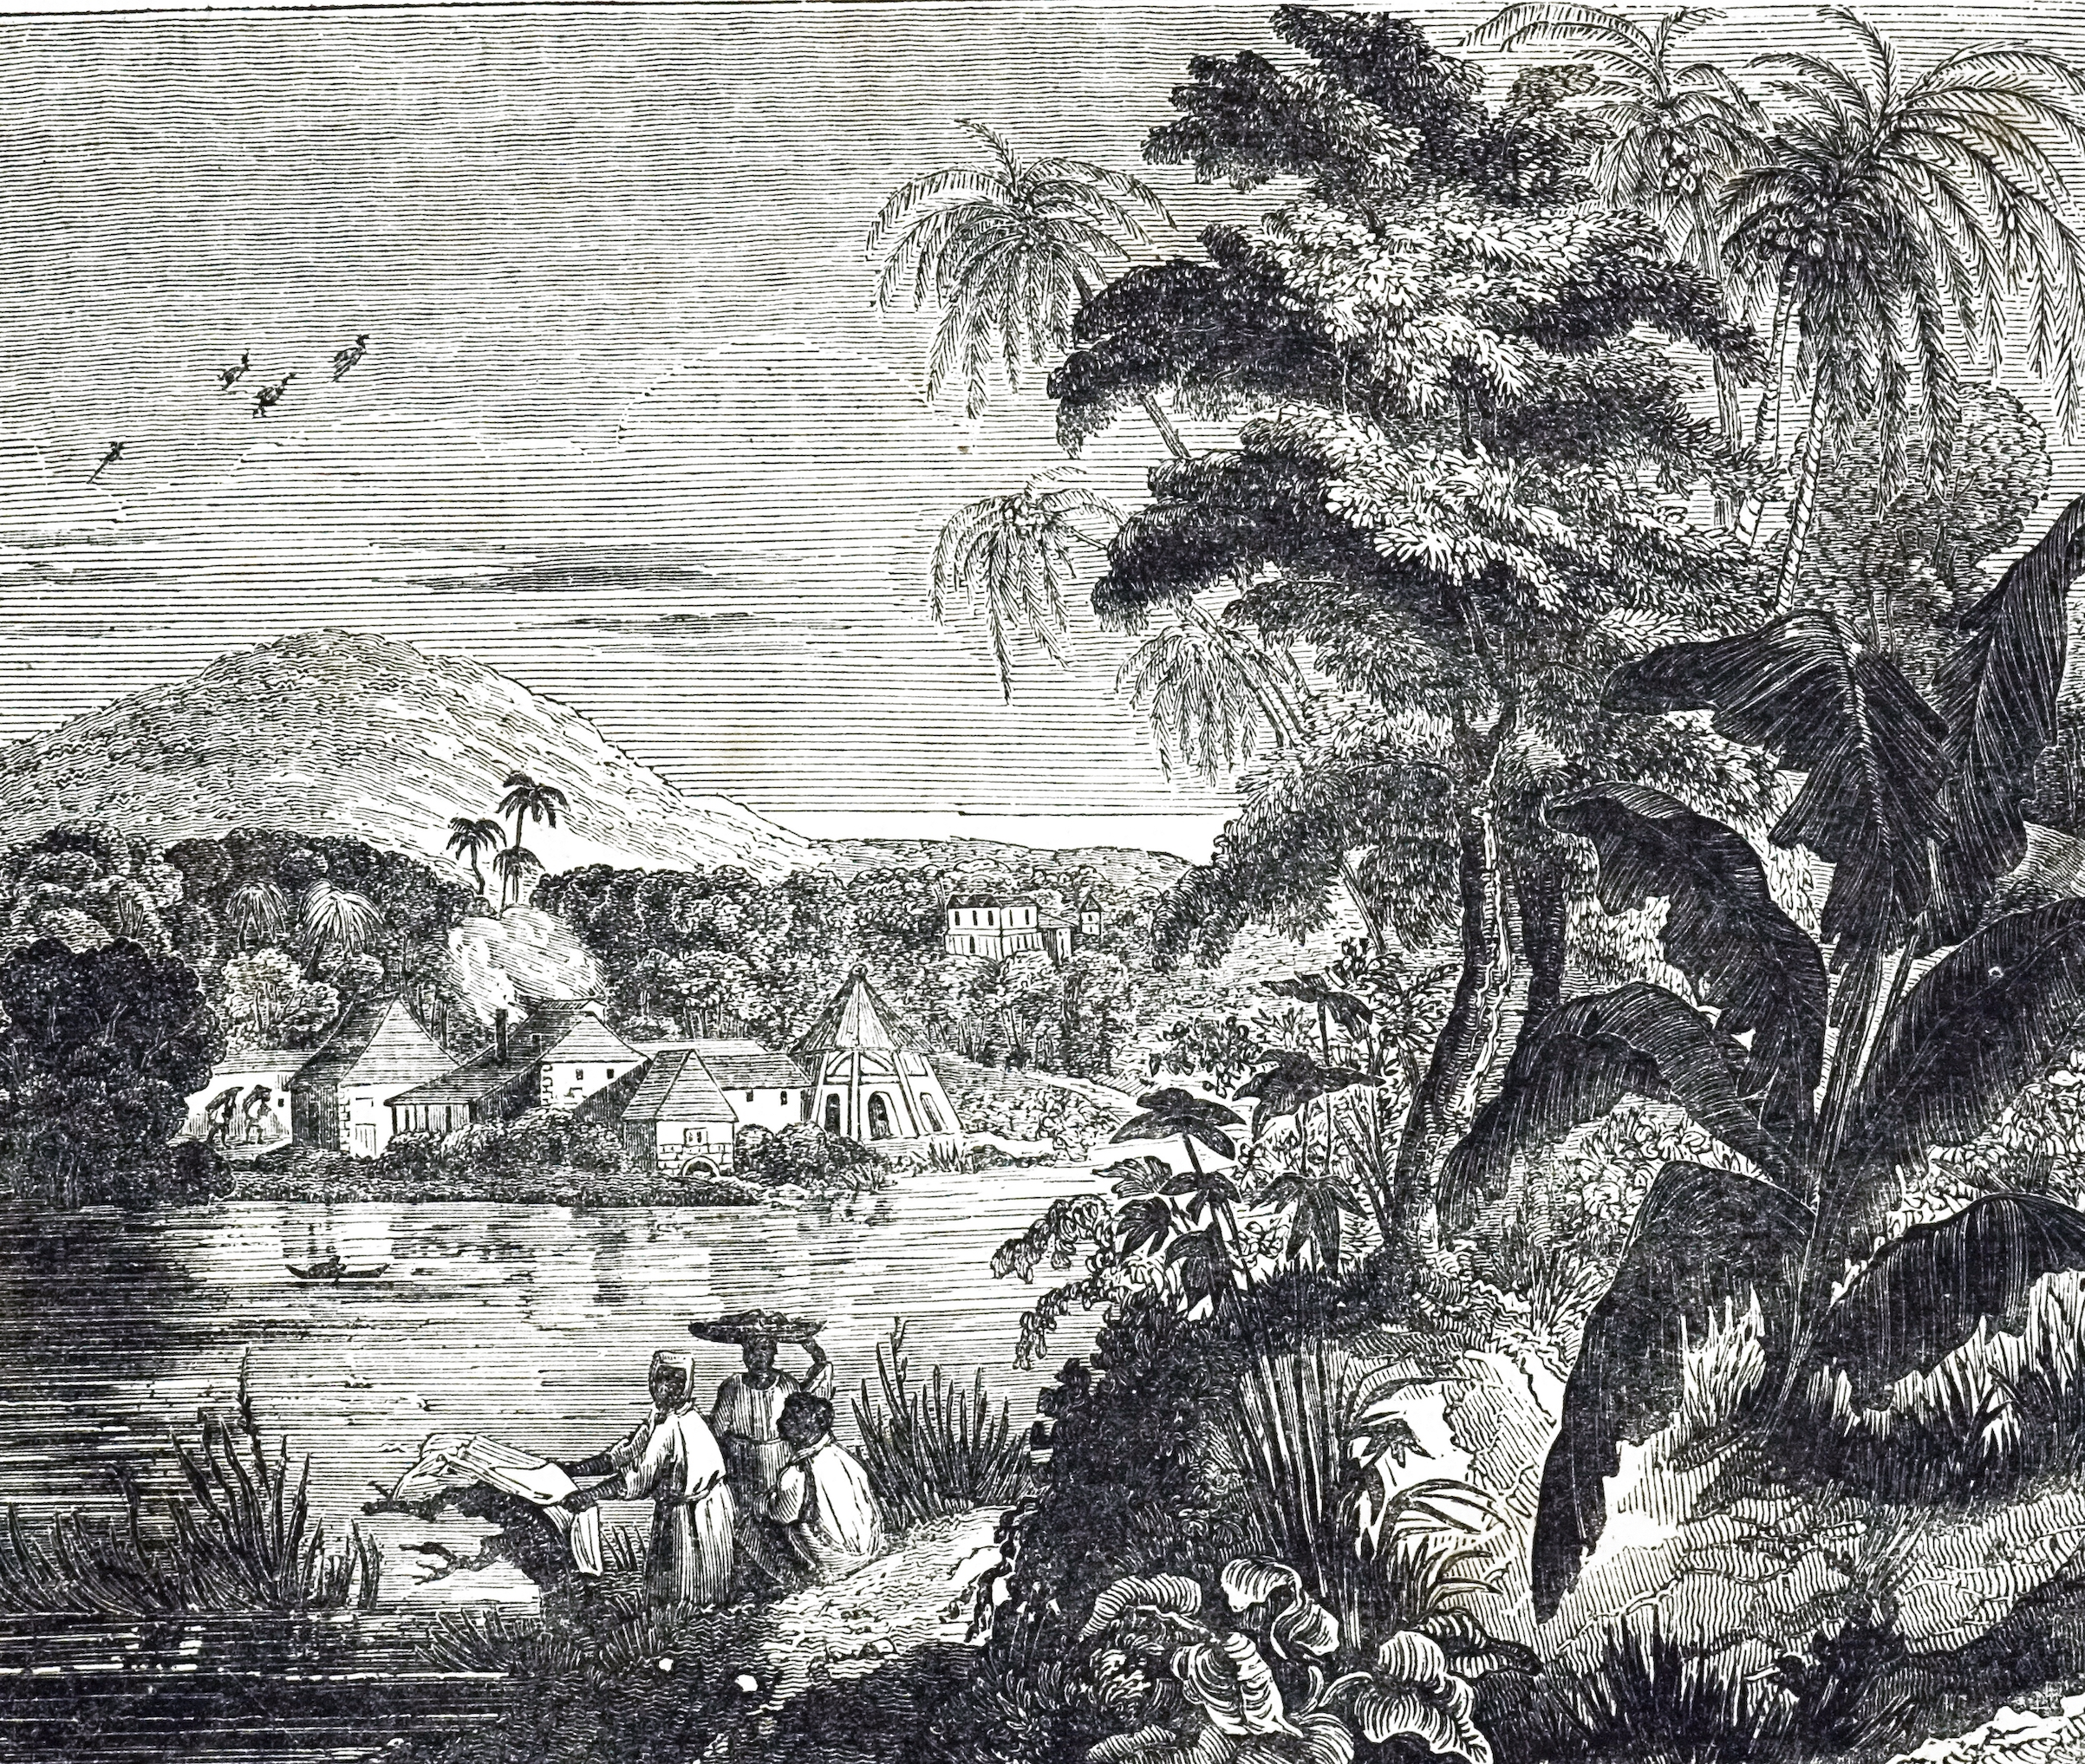 An engraving depicting a Jamaican sugarcane plantation during the sugar boom. African slaves harvested the sugar cane for their British owners. Dated 19th century.